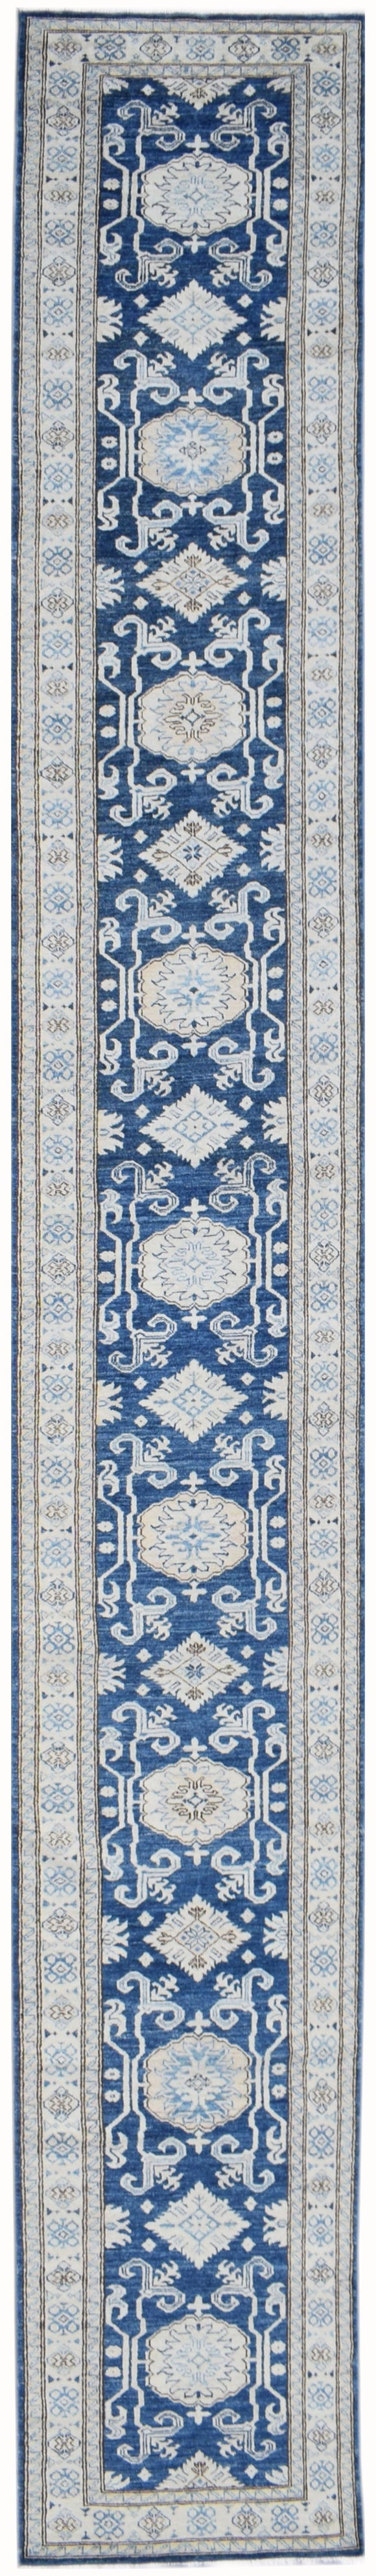 Handmade Super Sultan Collection Hallway Runner | 616 x 80 cm | 20'3